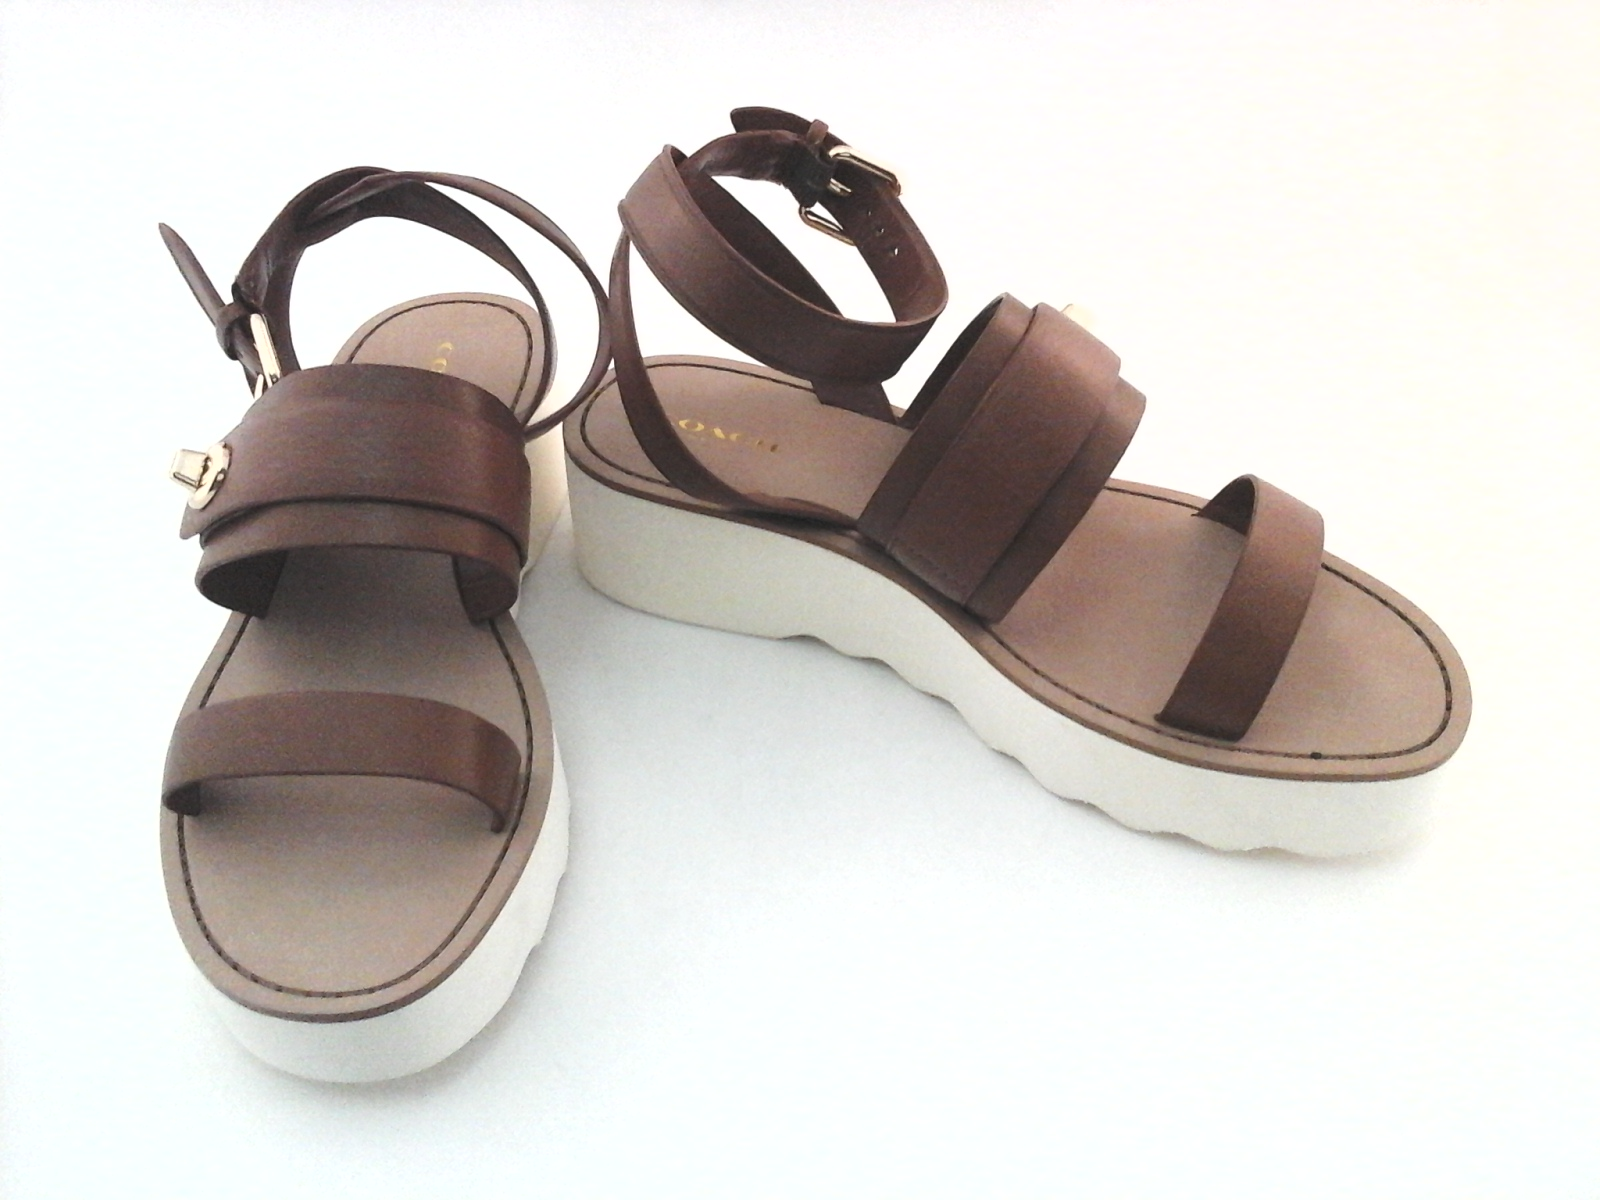 9deaf24f5b5c1e COACH Sandals Platt Platform Ankle Strap Strappy Shoes Saddle Brown A00958   160